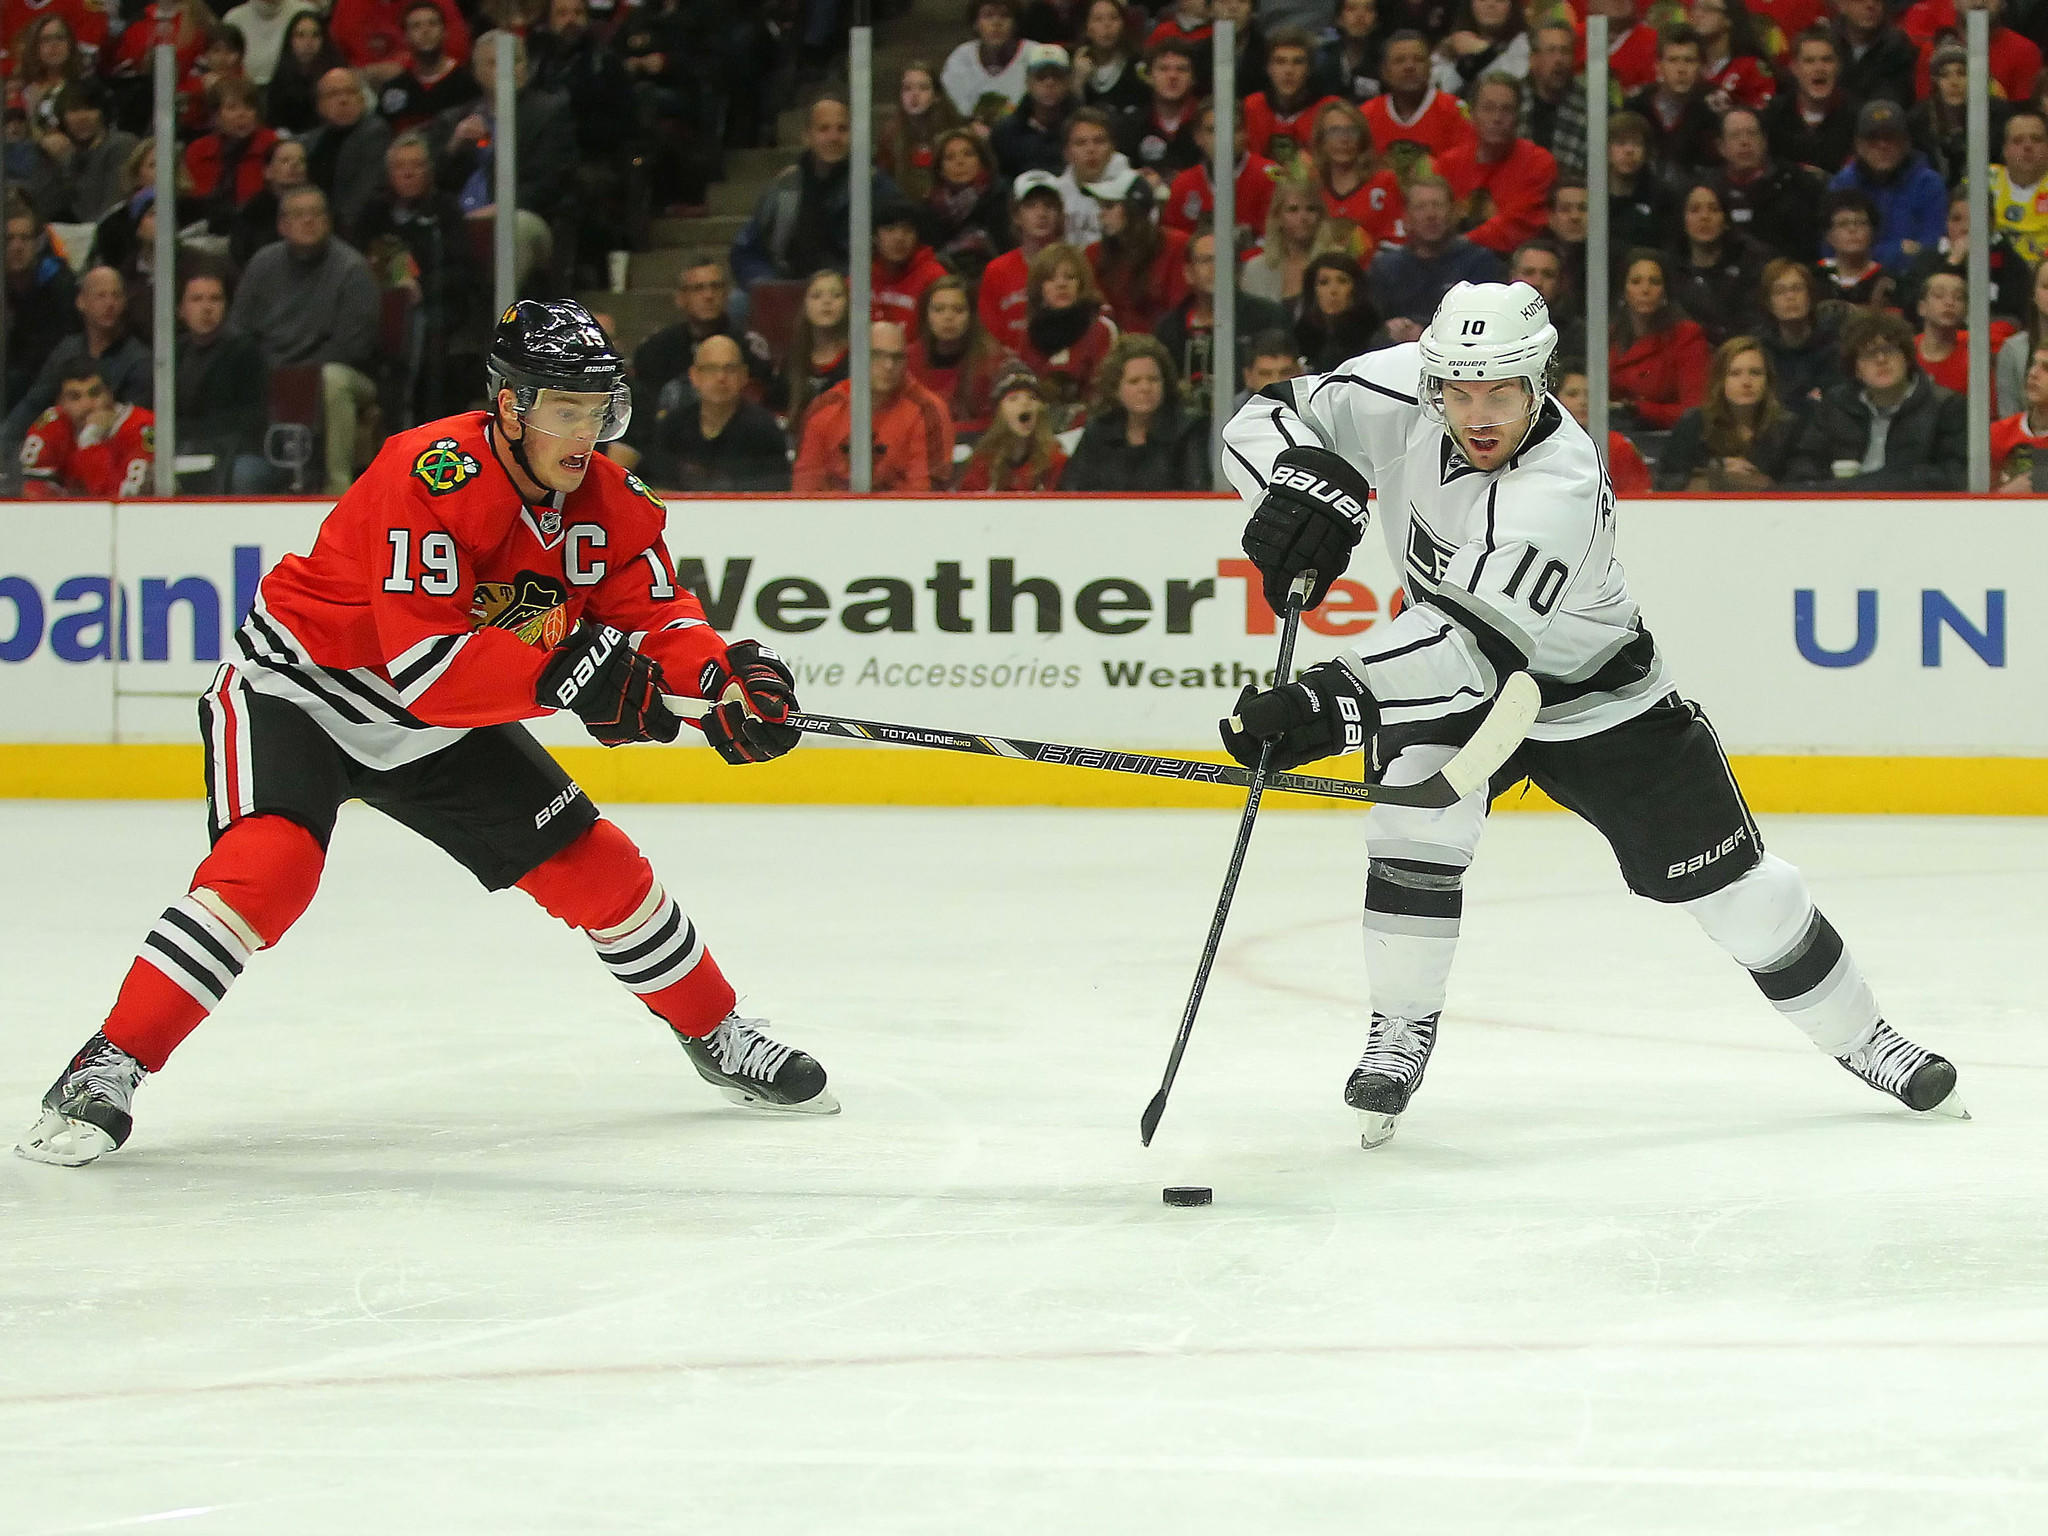 The Kings' Mike Richards is checked by Jonathan Toews during the third period at the United Center.